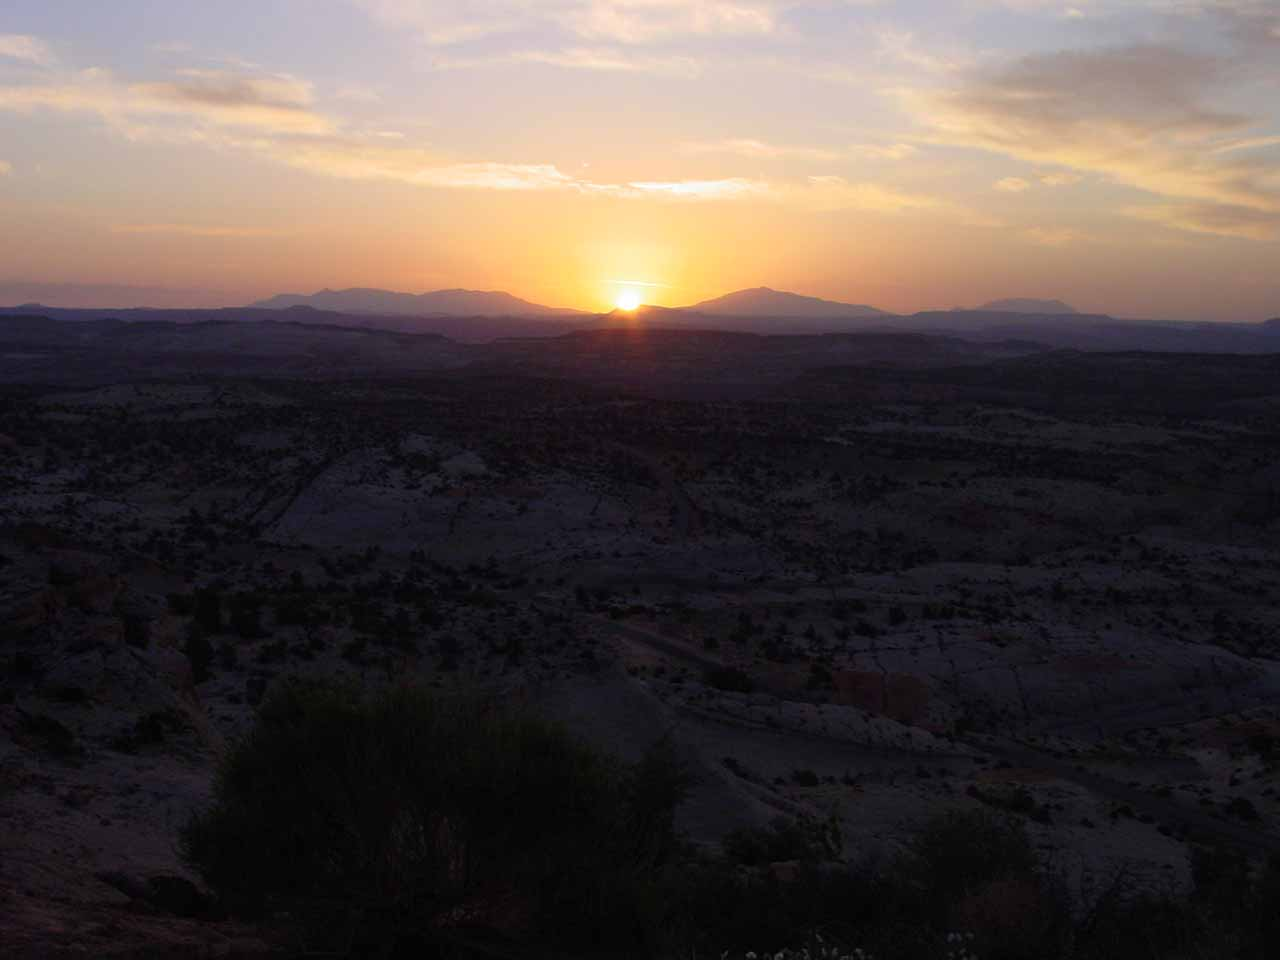 Sunrise over the slickrock expanse of Escalante